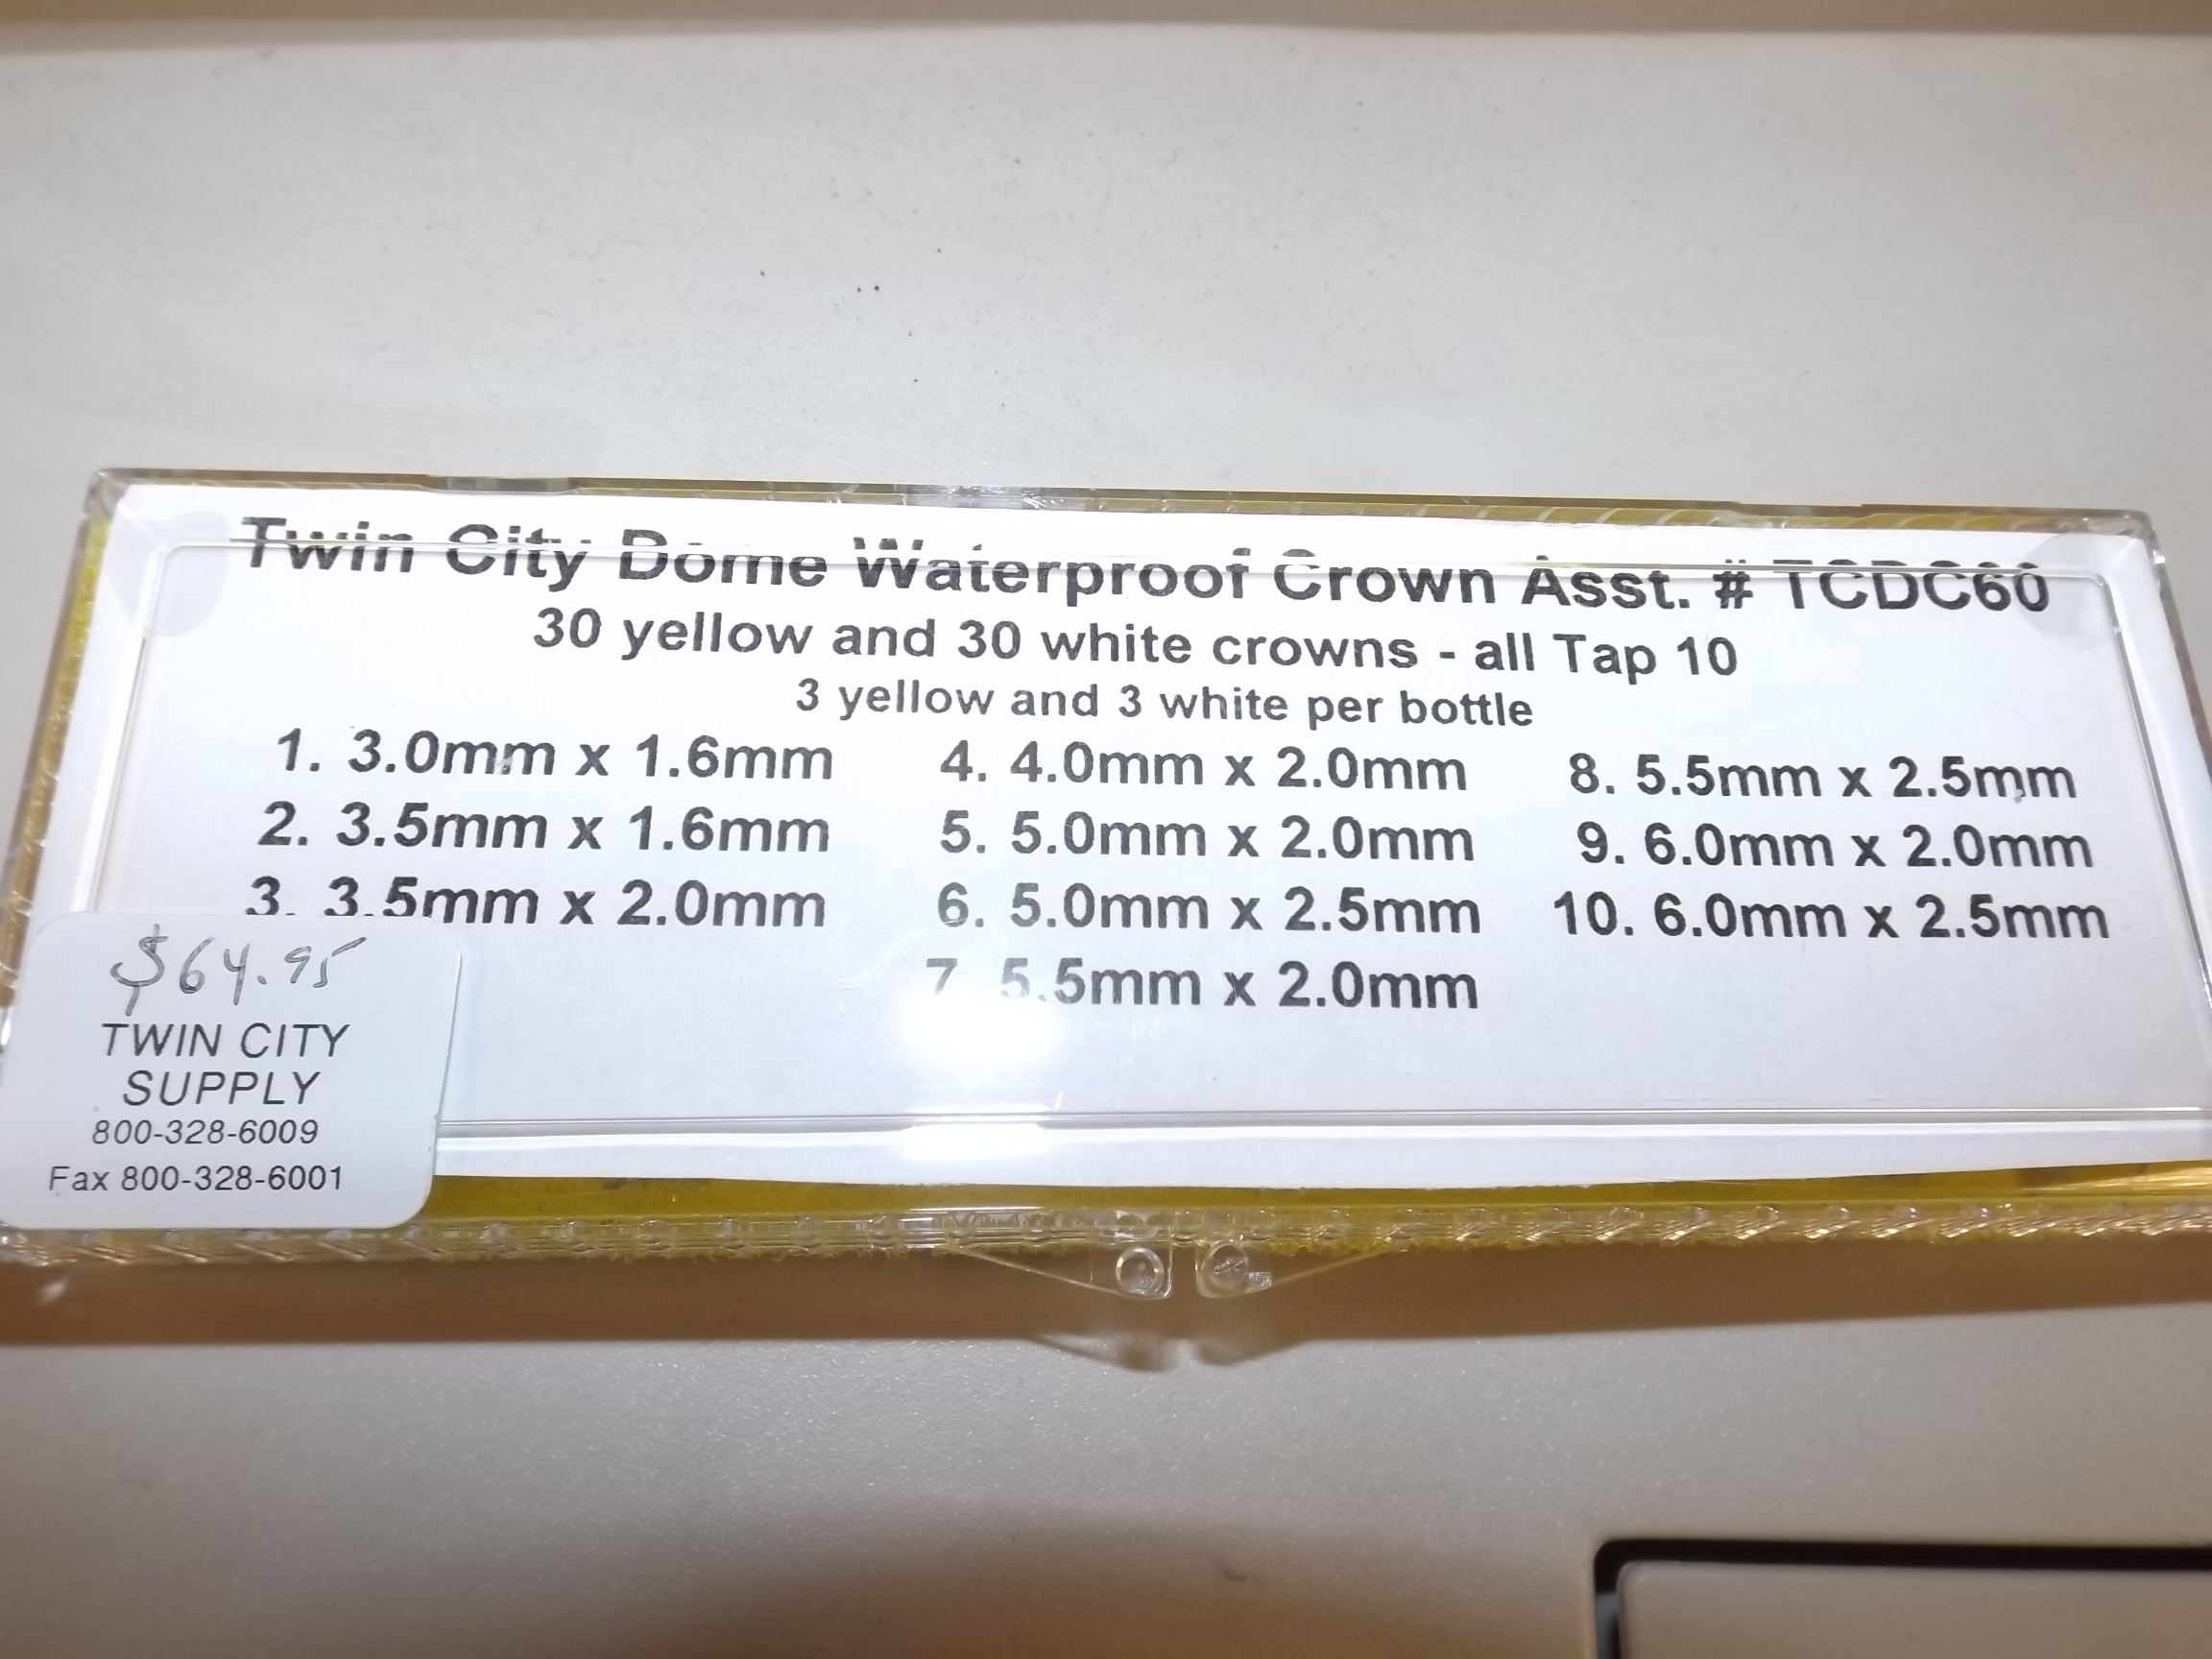 TCDC60  Acon Assortment of Domed Waterproof Tap 10 Watch Crowns 60 pc